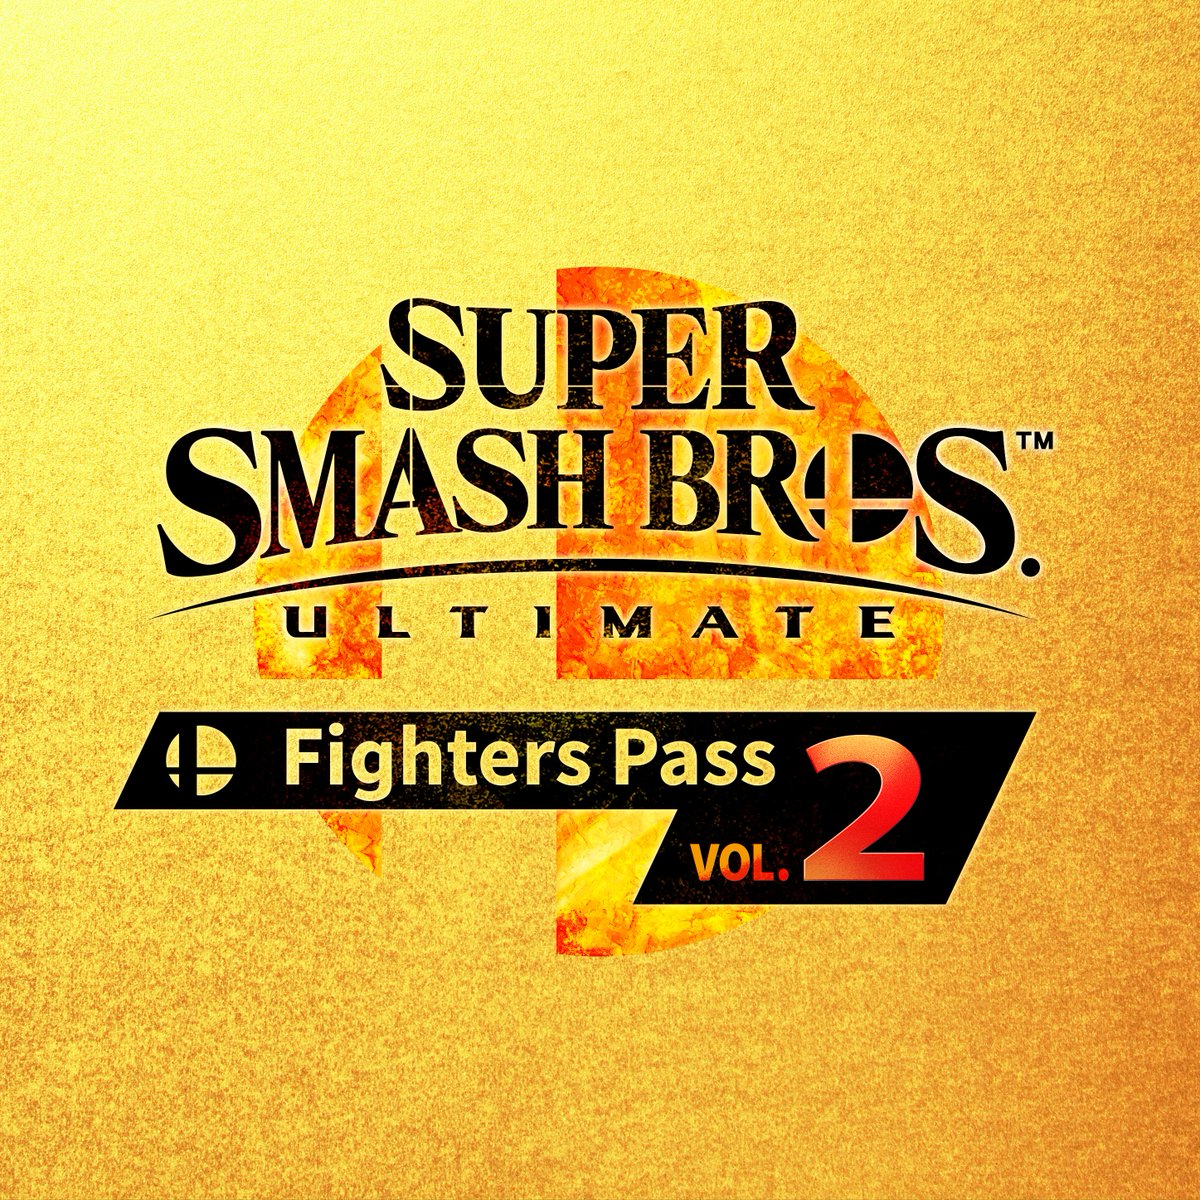 Good news, fighters. Super #SmashBrosUltimate Fighters Pass Vol. 2 will be available for pre-purchase on 1/28!   This Fighters Pass will contain…6 fighters!  It also includes a bonus Mii Swordfighter outfit, Ancient Soldier Gear, which will be available for use on 1/28.